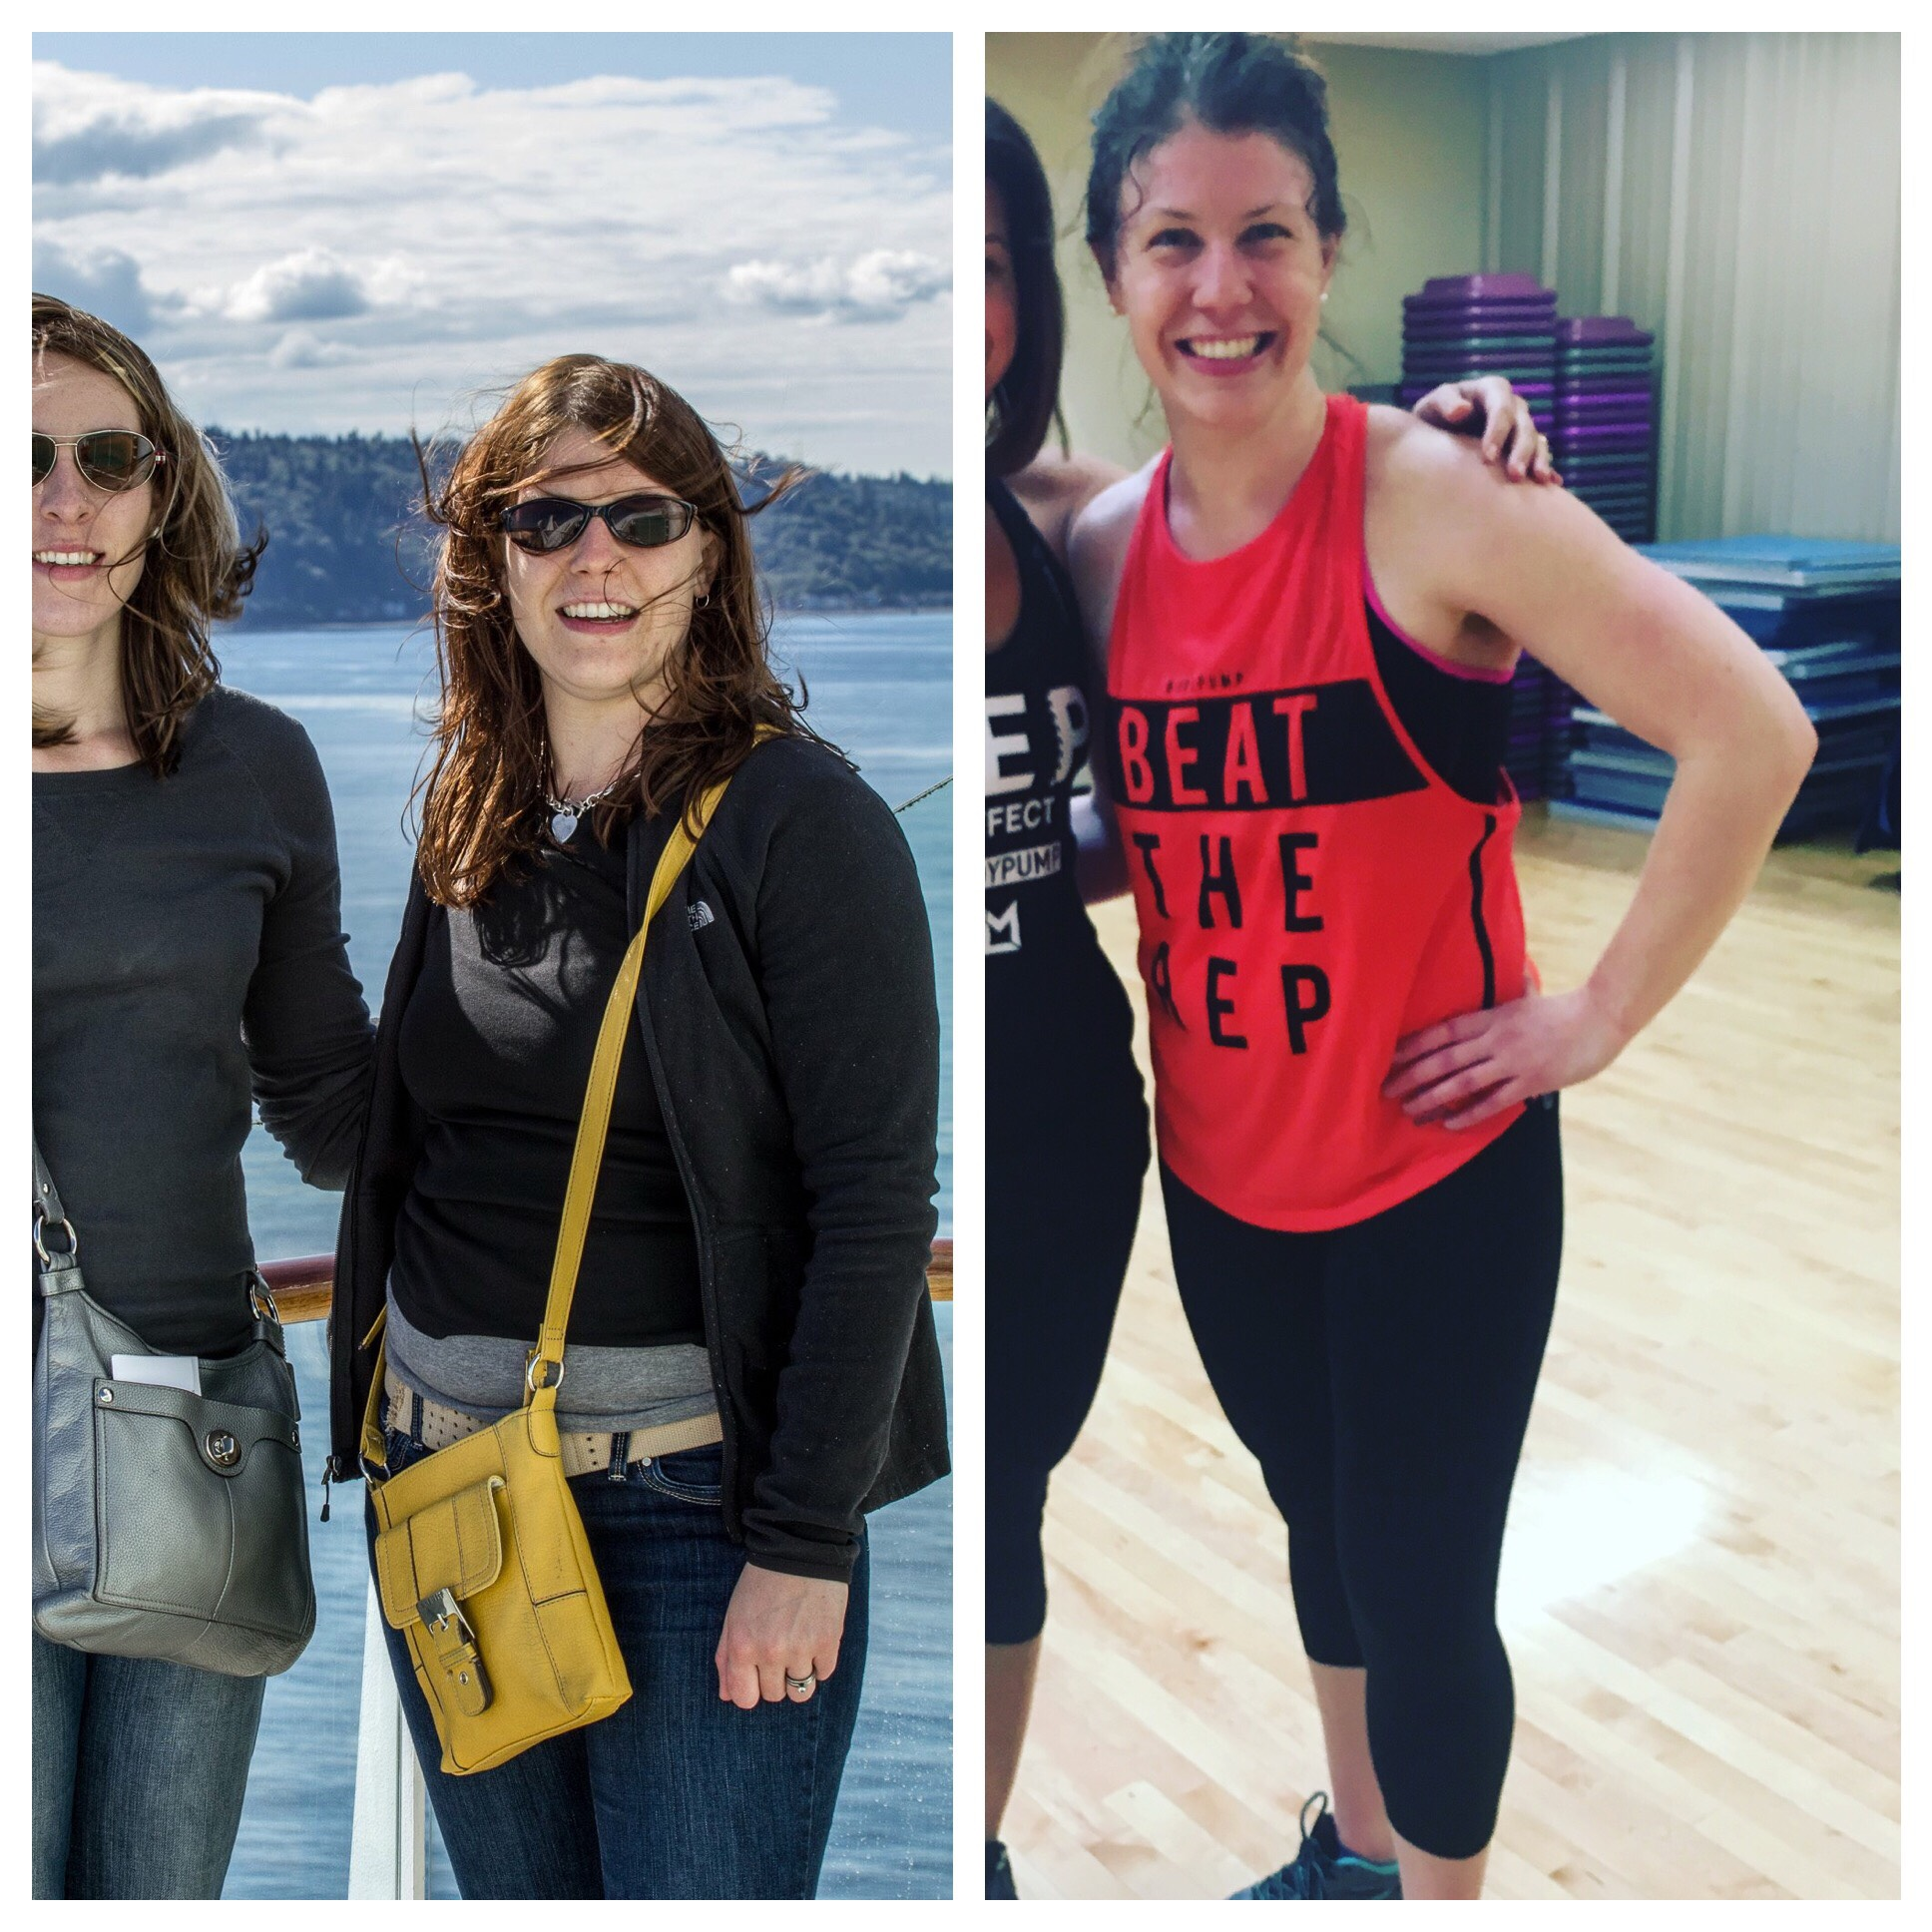 Lindsay is a mom of 1, full-time teacher, part-time fitness professional, and worked with FLF in 2017. She has also completed Fat Loss Cooking School. She is still rocking her FLF lifestyle as a member of our FLF Ambassadors group!